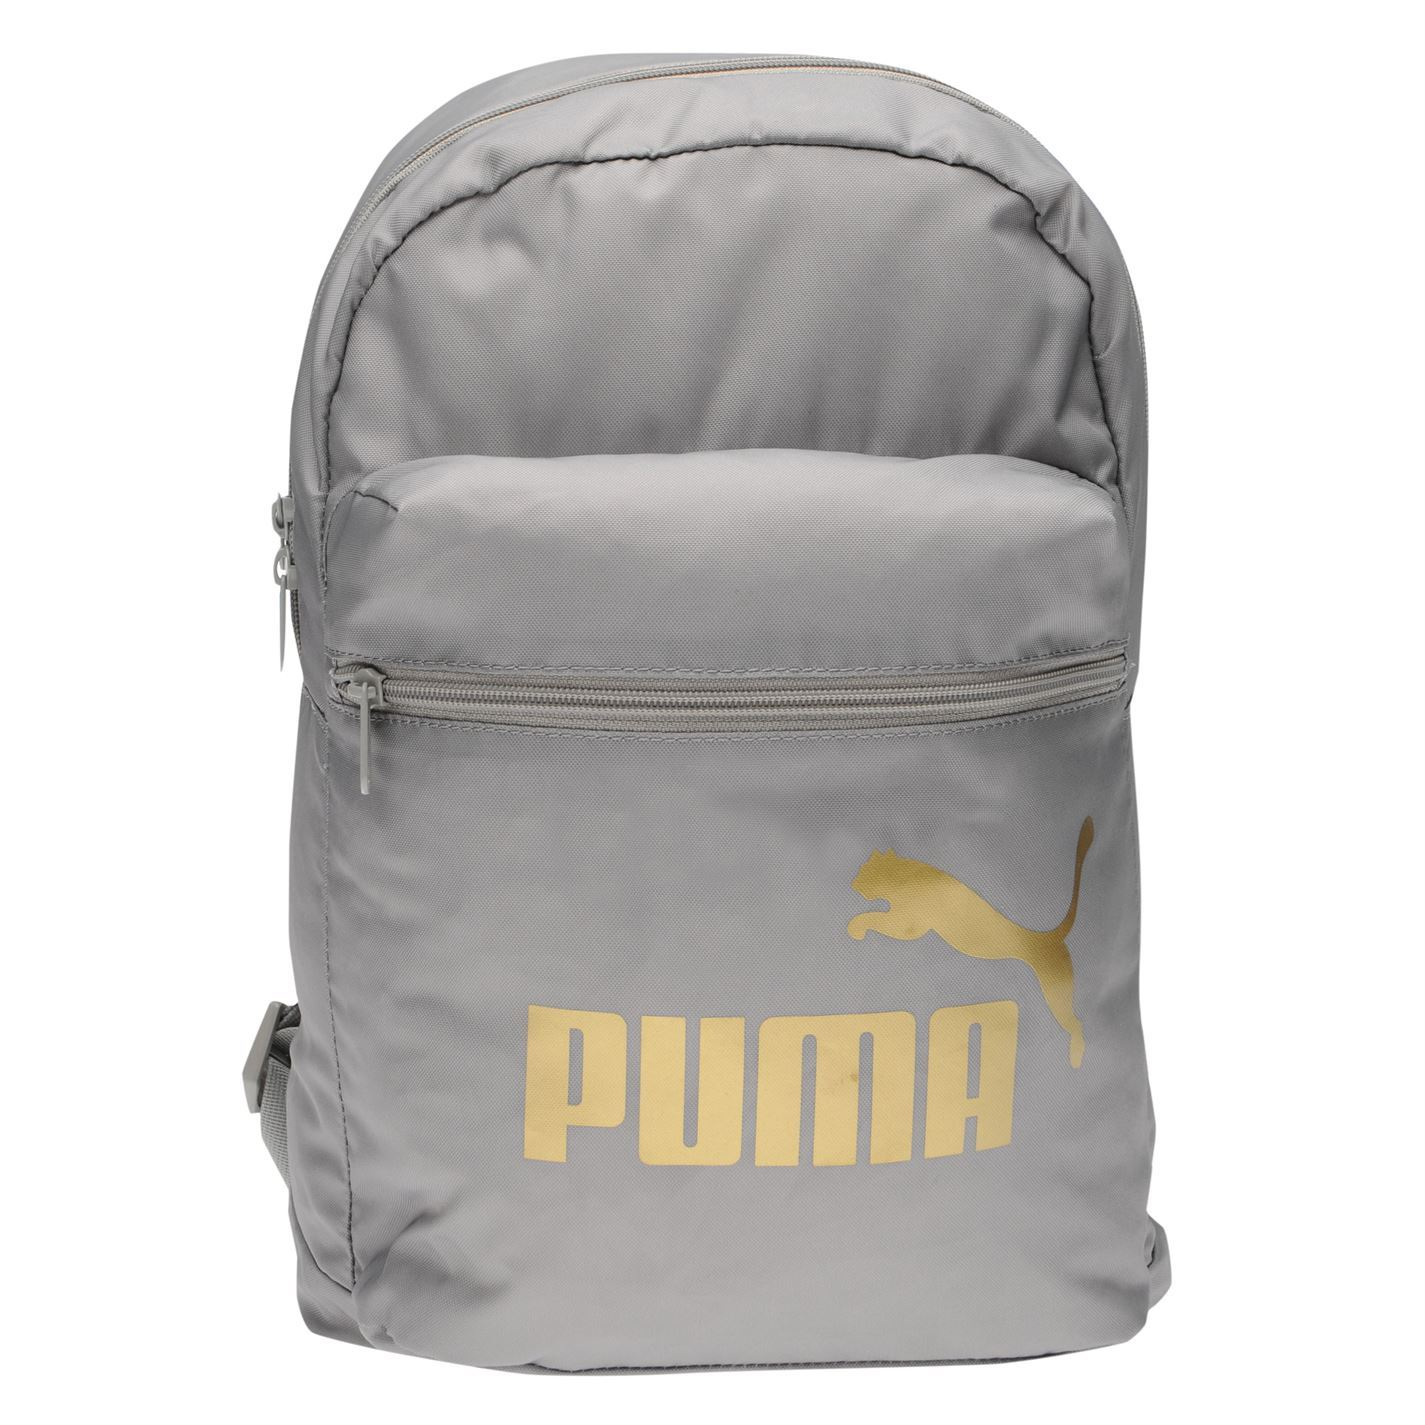 ... Puma Archive Backpack Womens Rucksack Daypack Bag c9f0f2695e887